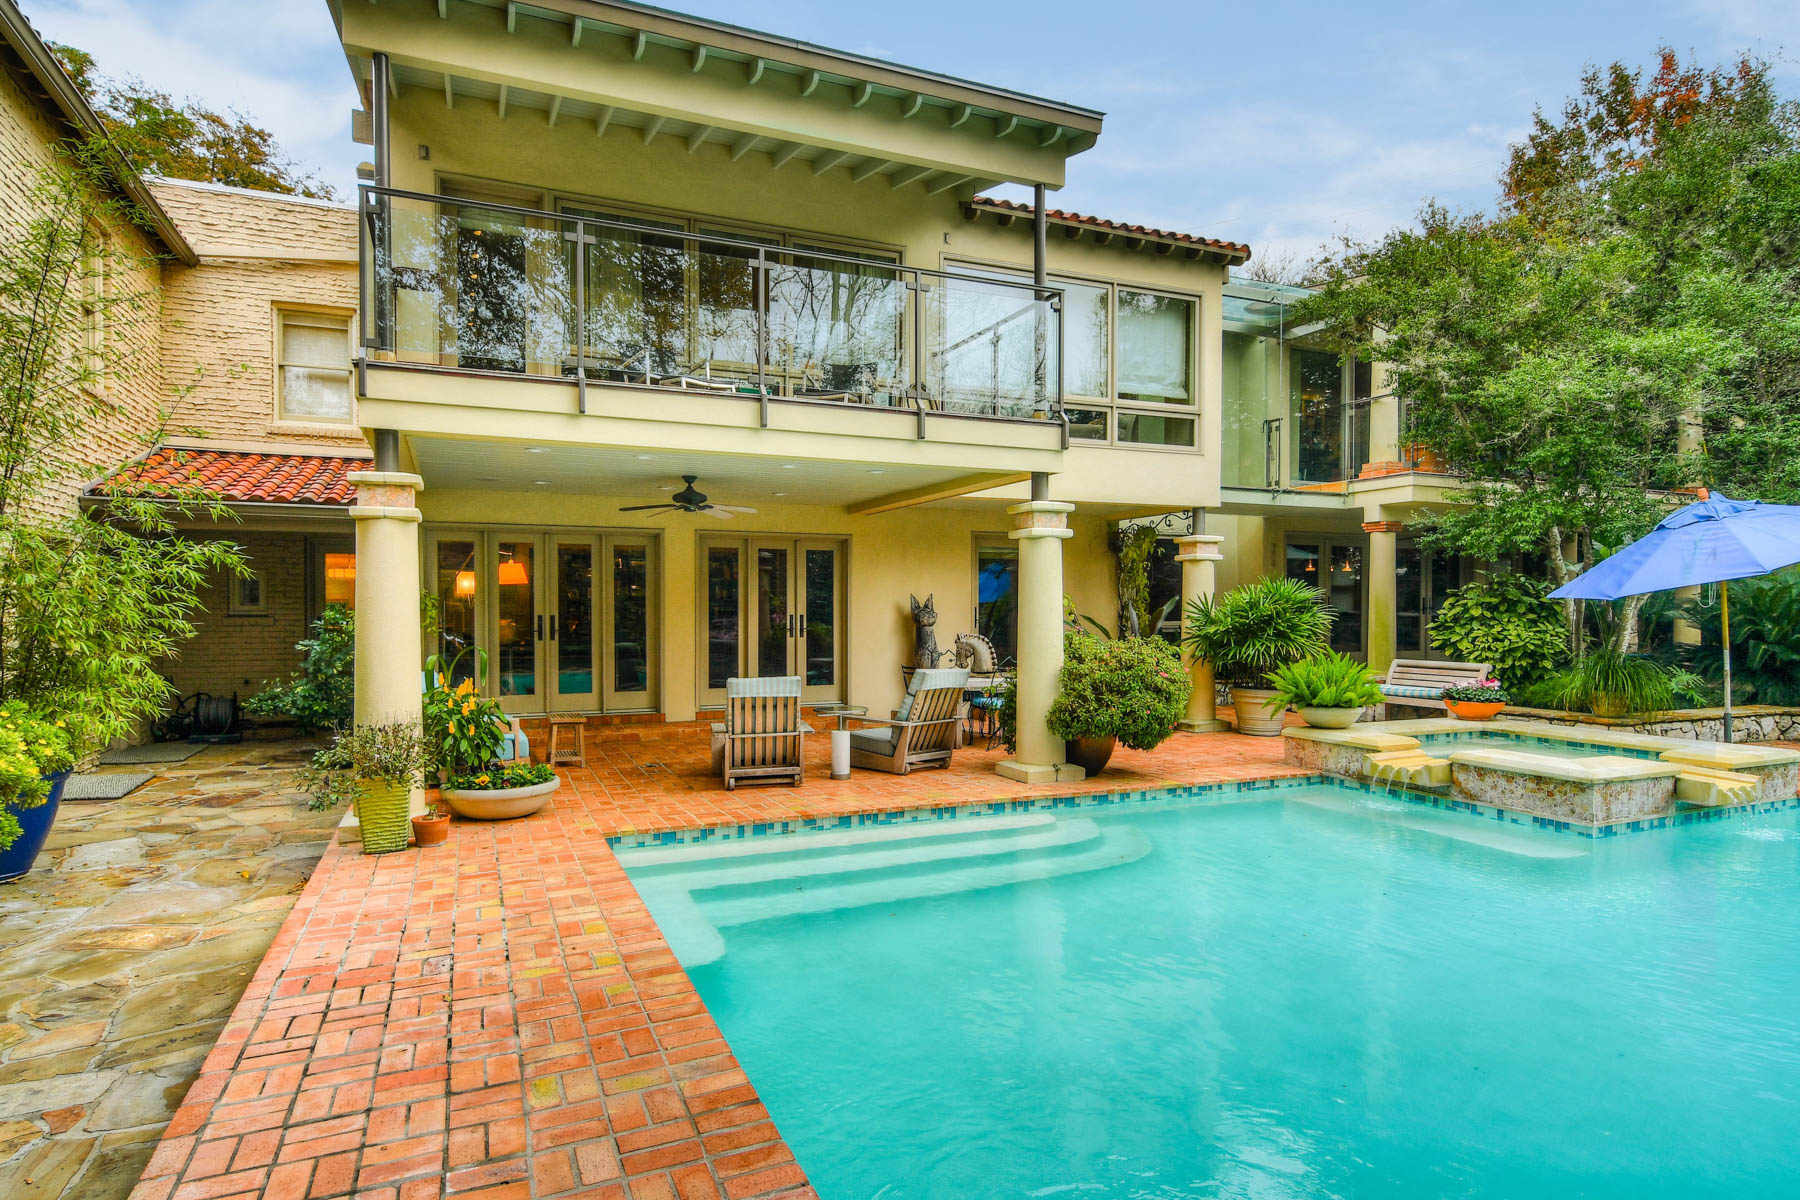 Additional photo for property listing at Vintage 1920's Olmos Park Estate 408 Park Dr San Antonio, Texas 78212 United States